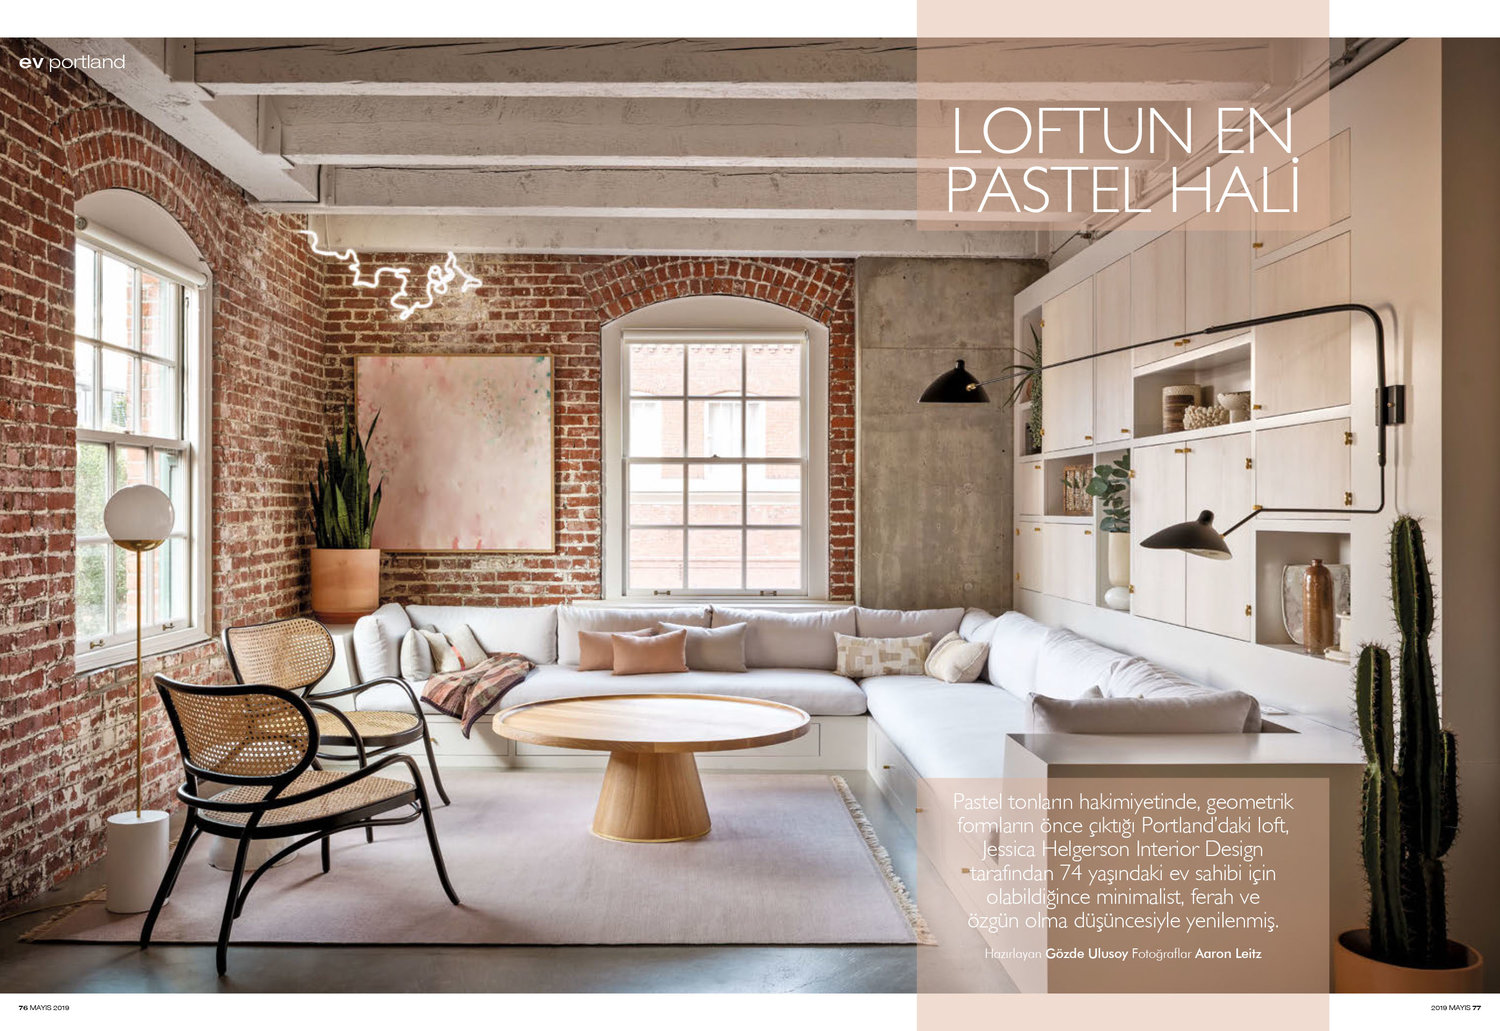 Pearl Loft - Home Art Turkey — Jessica Helgerson Interior Design on home design graphics, home design dishes, home design planning, home design ads, home design project, home design glitch, home design shapes, home design world, home design fails, home design before and after, house art, home design harmony, home design toys, home design europe, home design women, home design middle east, home design magazine covers, home design window treatments, home design coloring pages, home design california,